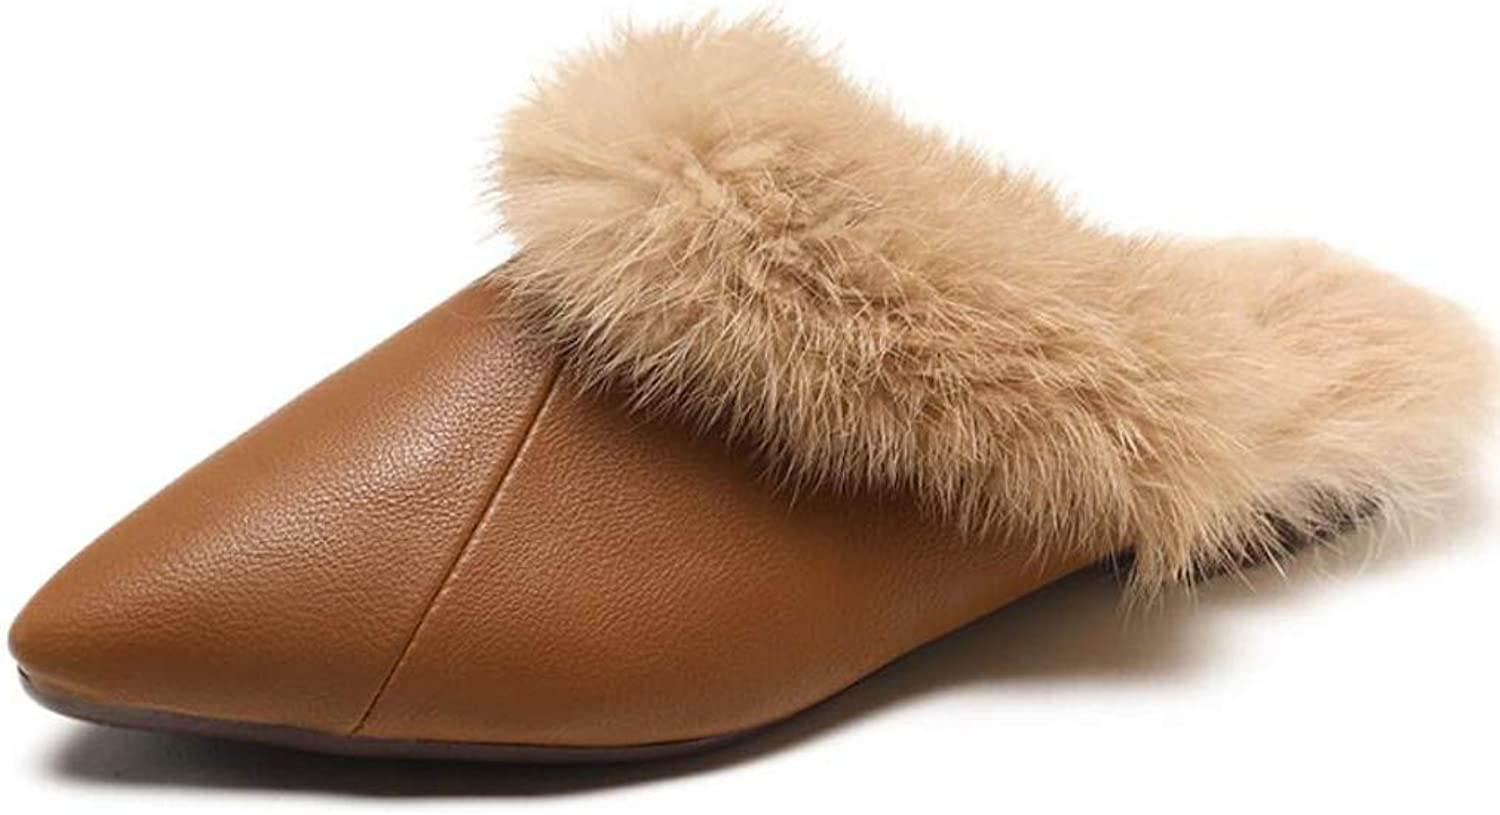 Womens Plush shoes Flat Heel Slippers Closed Toe Pointed shoes Fall Winter